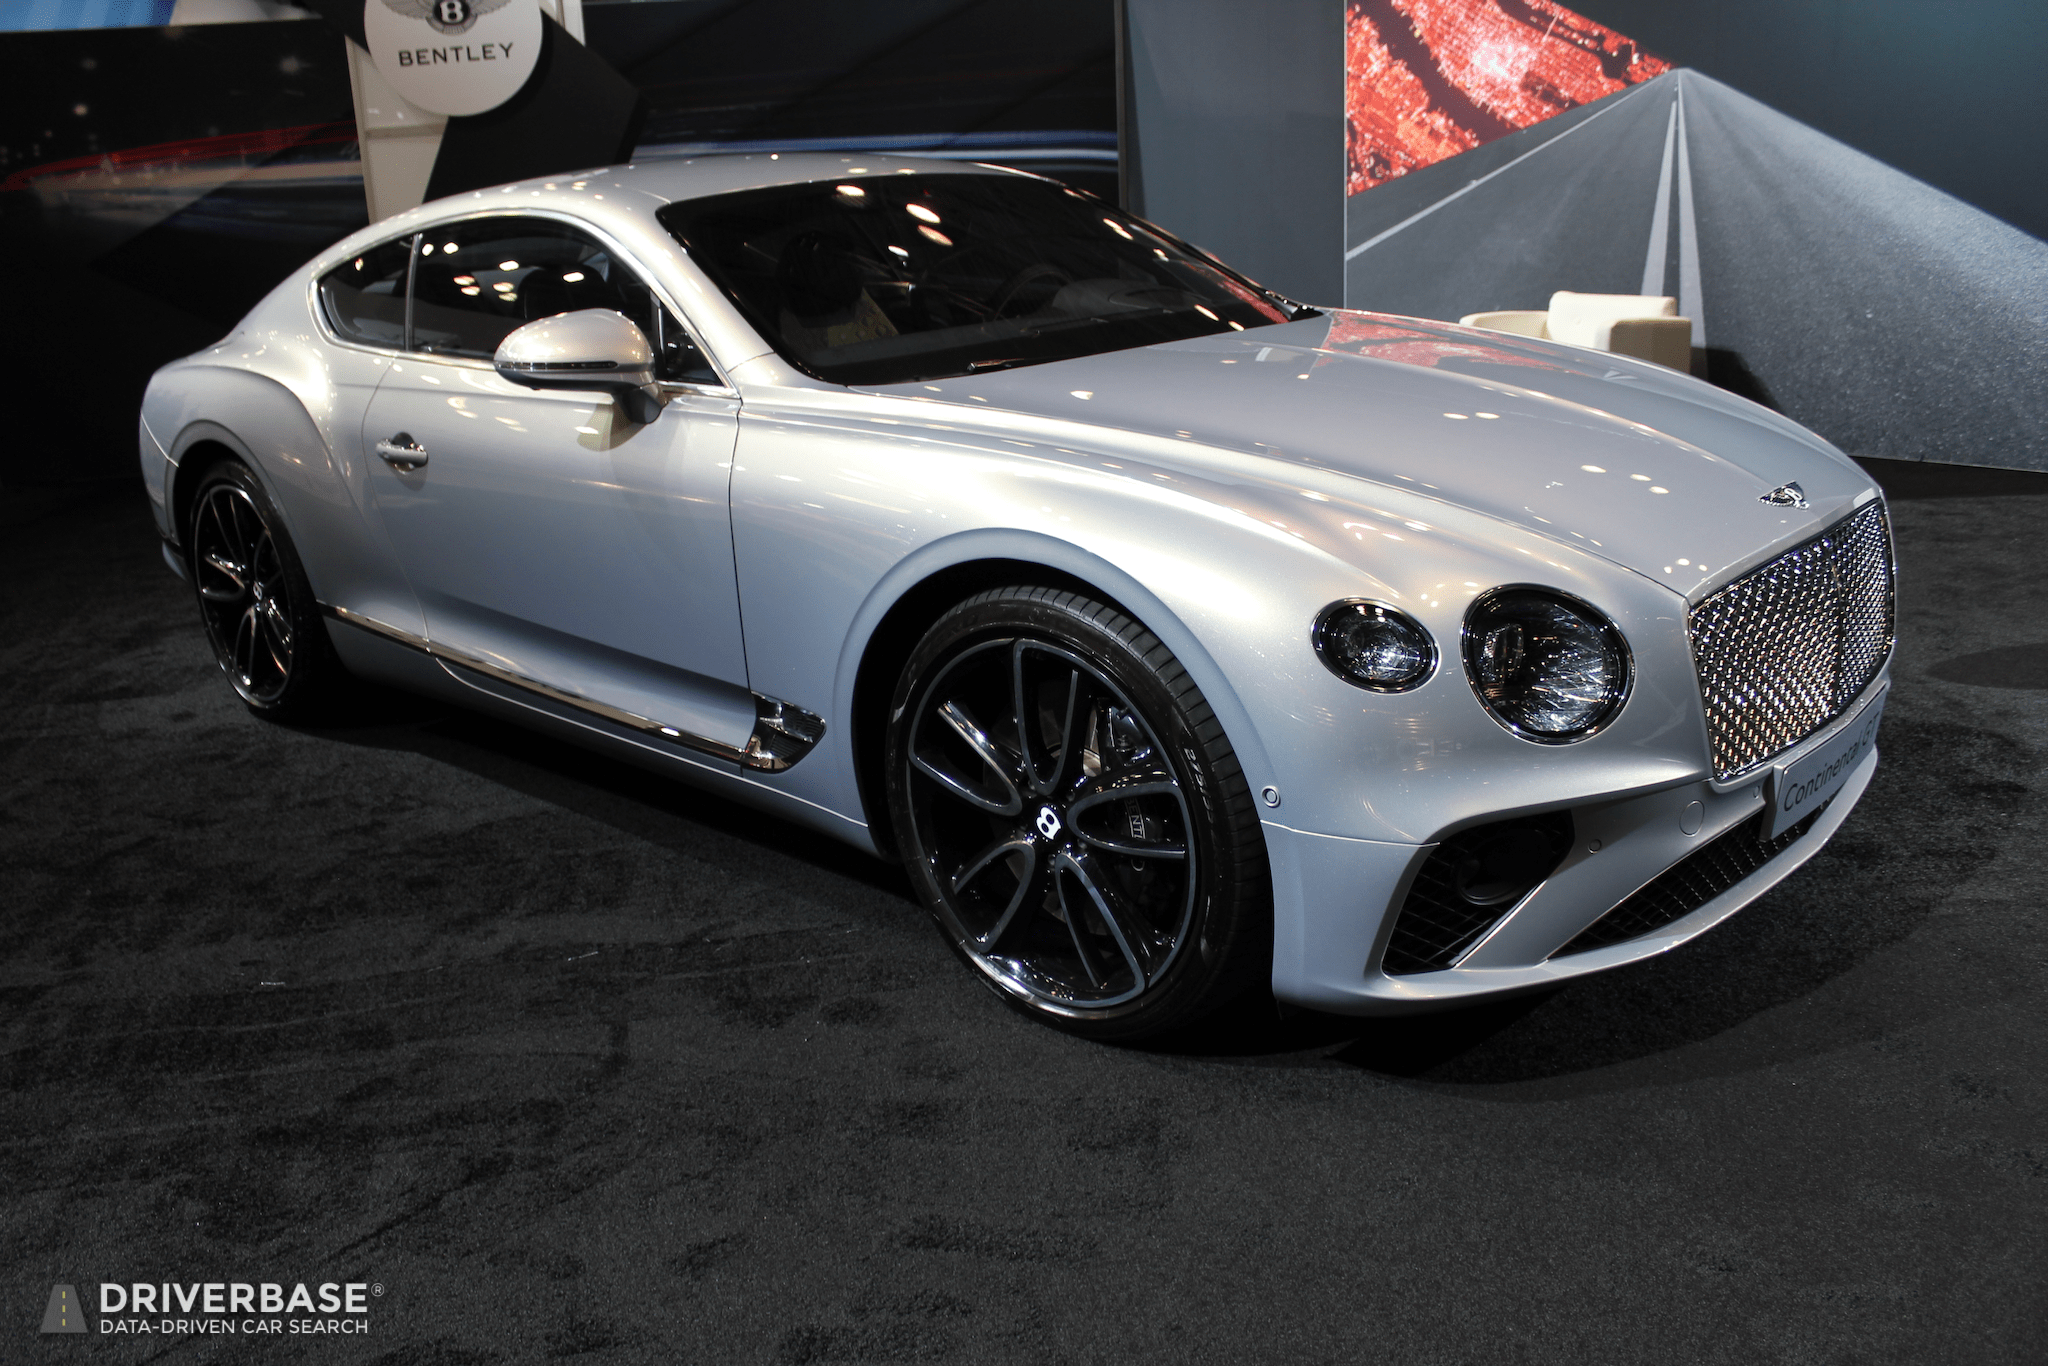 2020 Bentley Continental Gt At The At The 2019 New York Auto Show